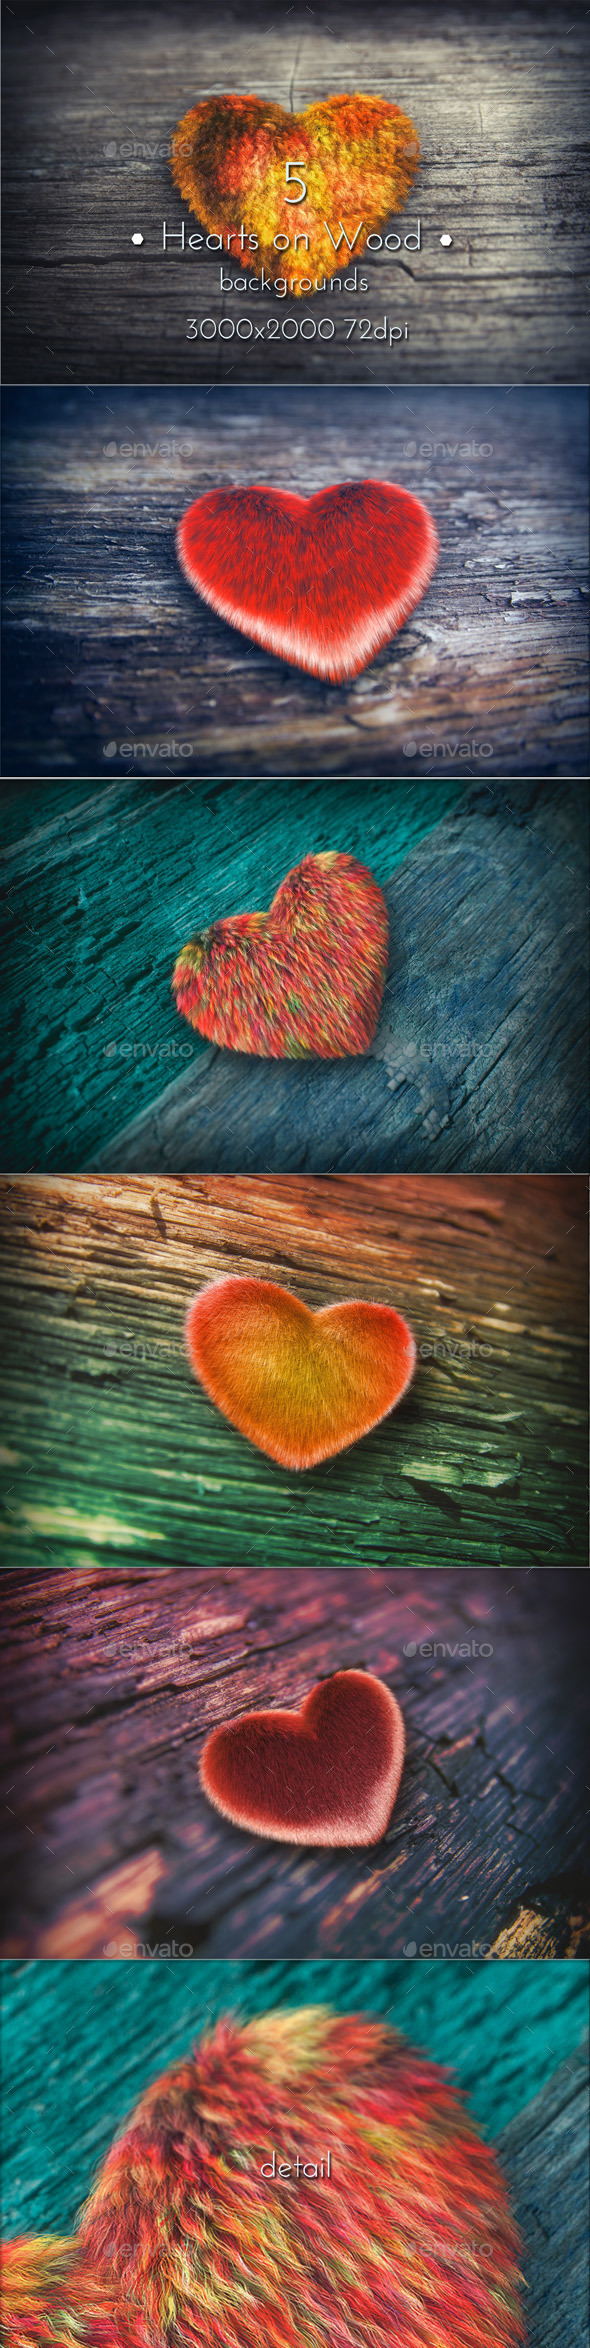 Hearts on Wood - Miscellaneous Backgrounds